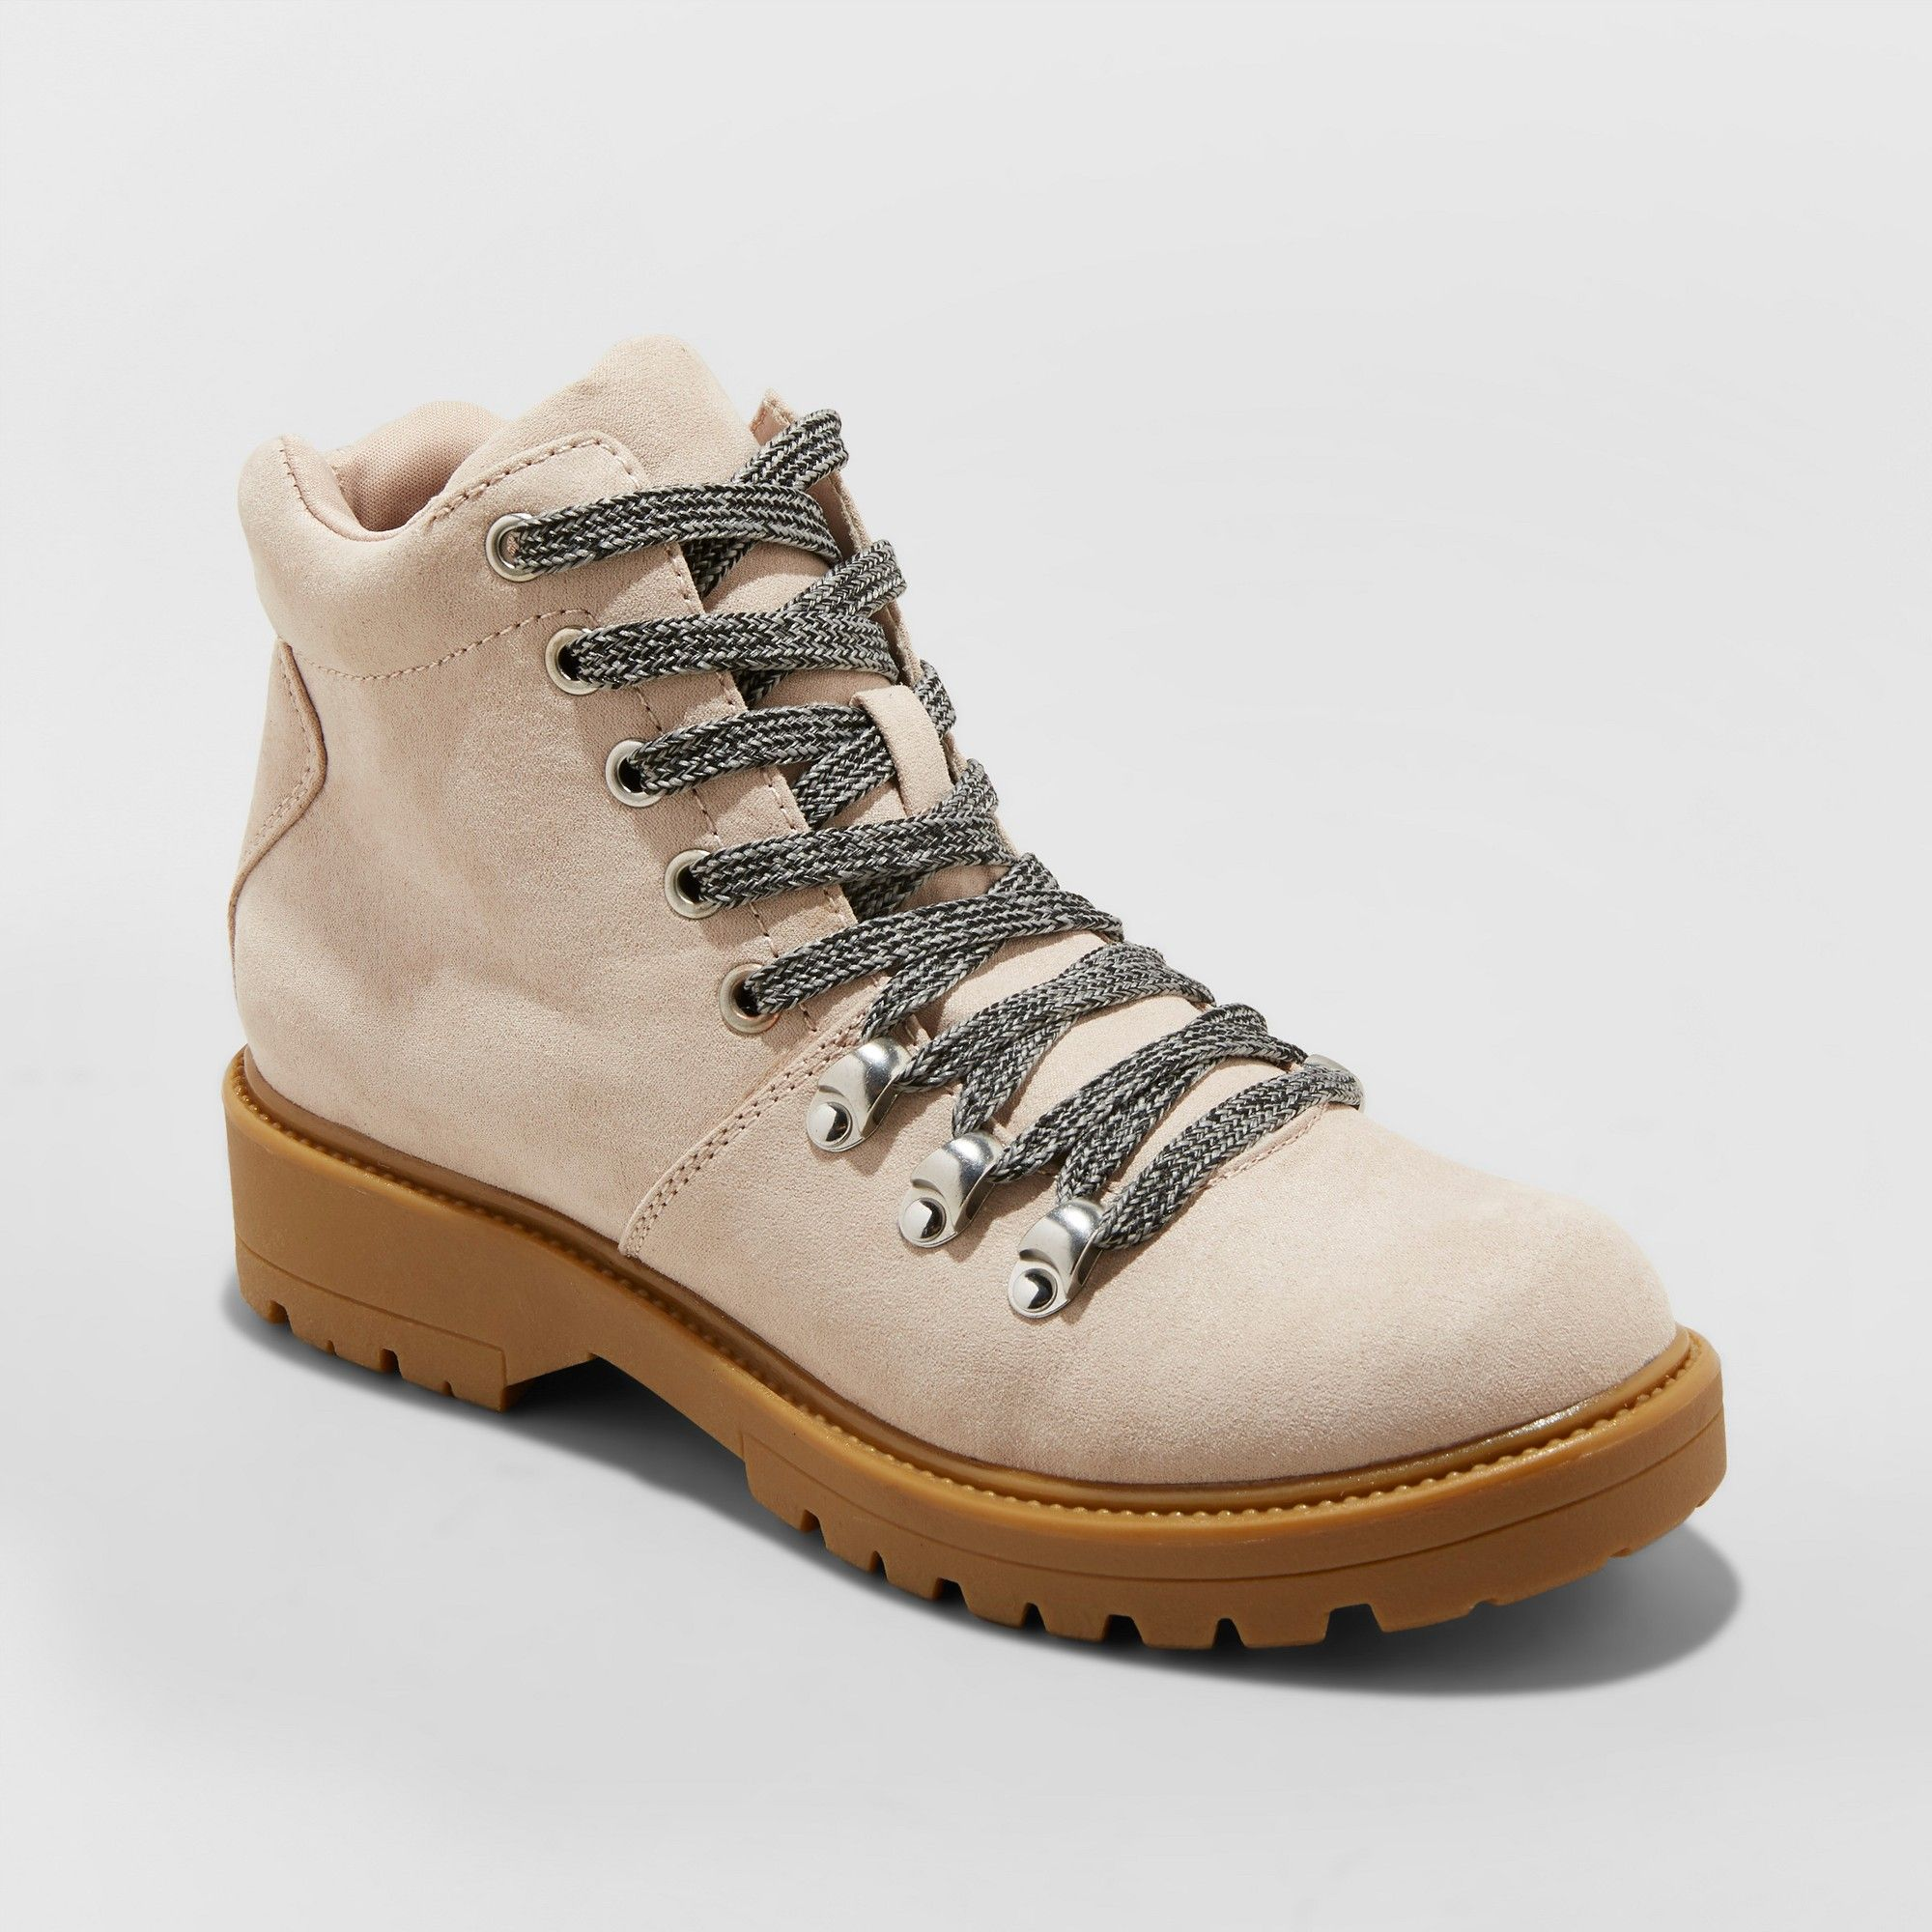 3137a48e35f Women's Karri Lace Up Hiker Boots - Universal Thread Blush 5 in 2019 ...